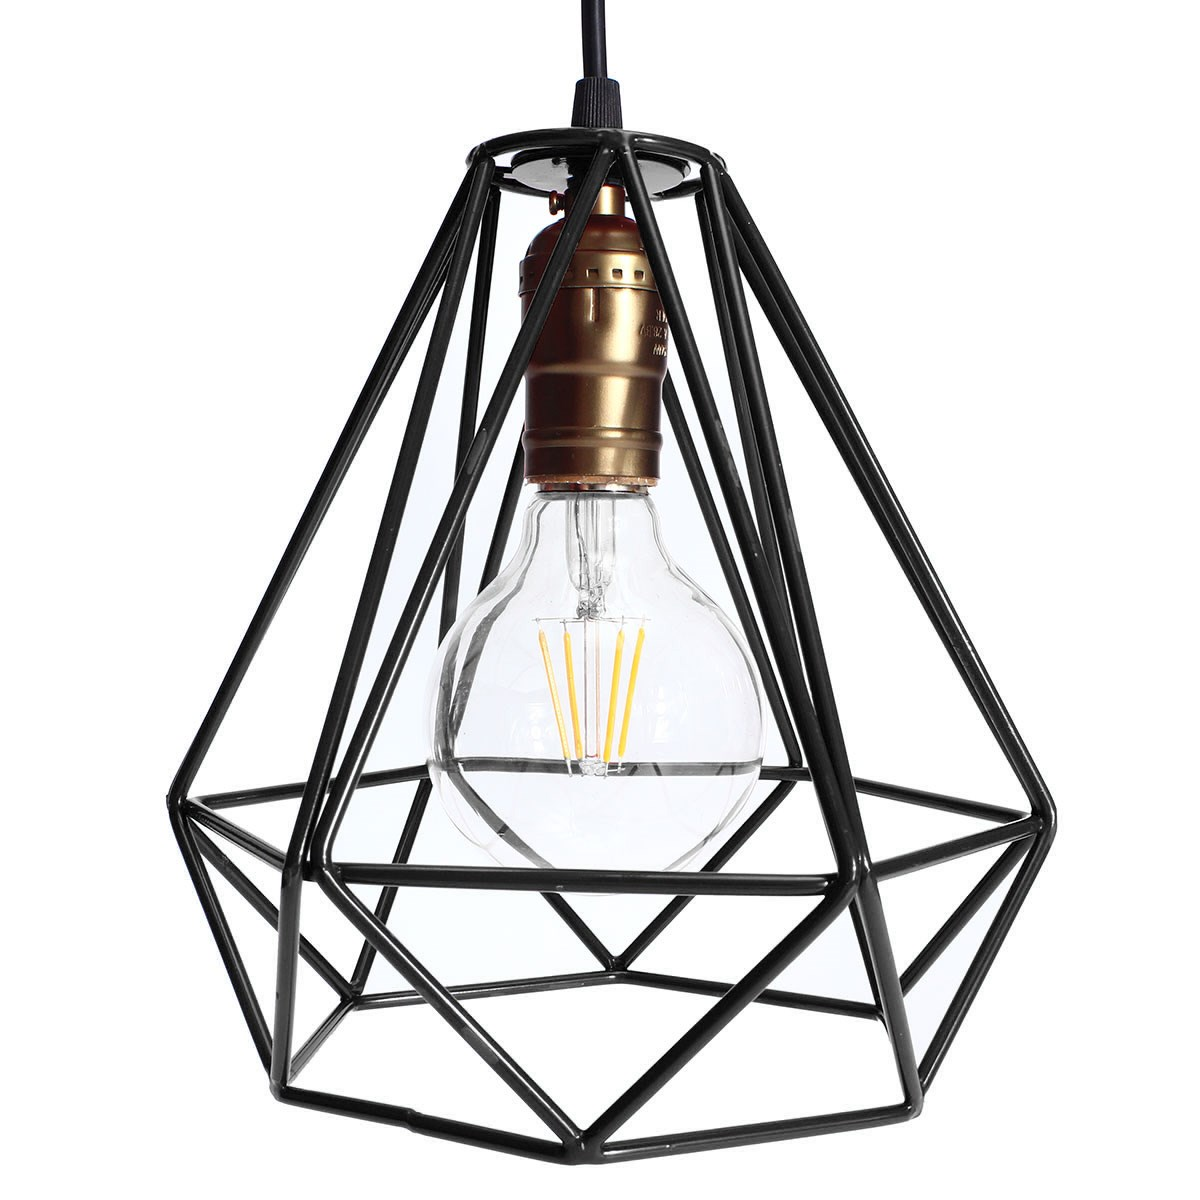 small resolution of lampshade modern lamp cover loft industrial edison metal wire frame ceiling pendant hanging light lamp cage fixture in lamp covers shades from lights